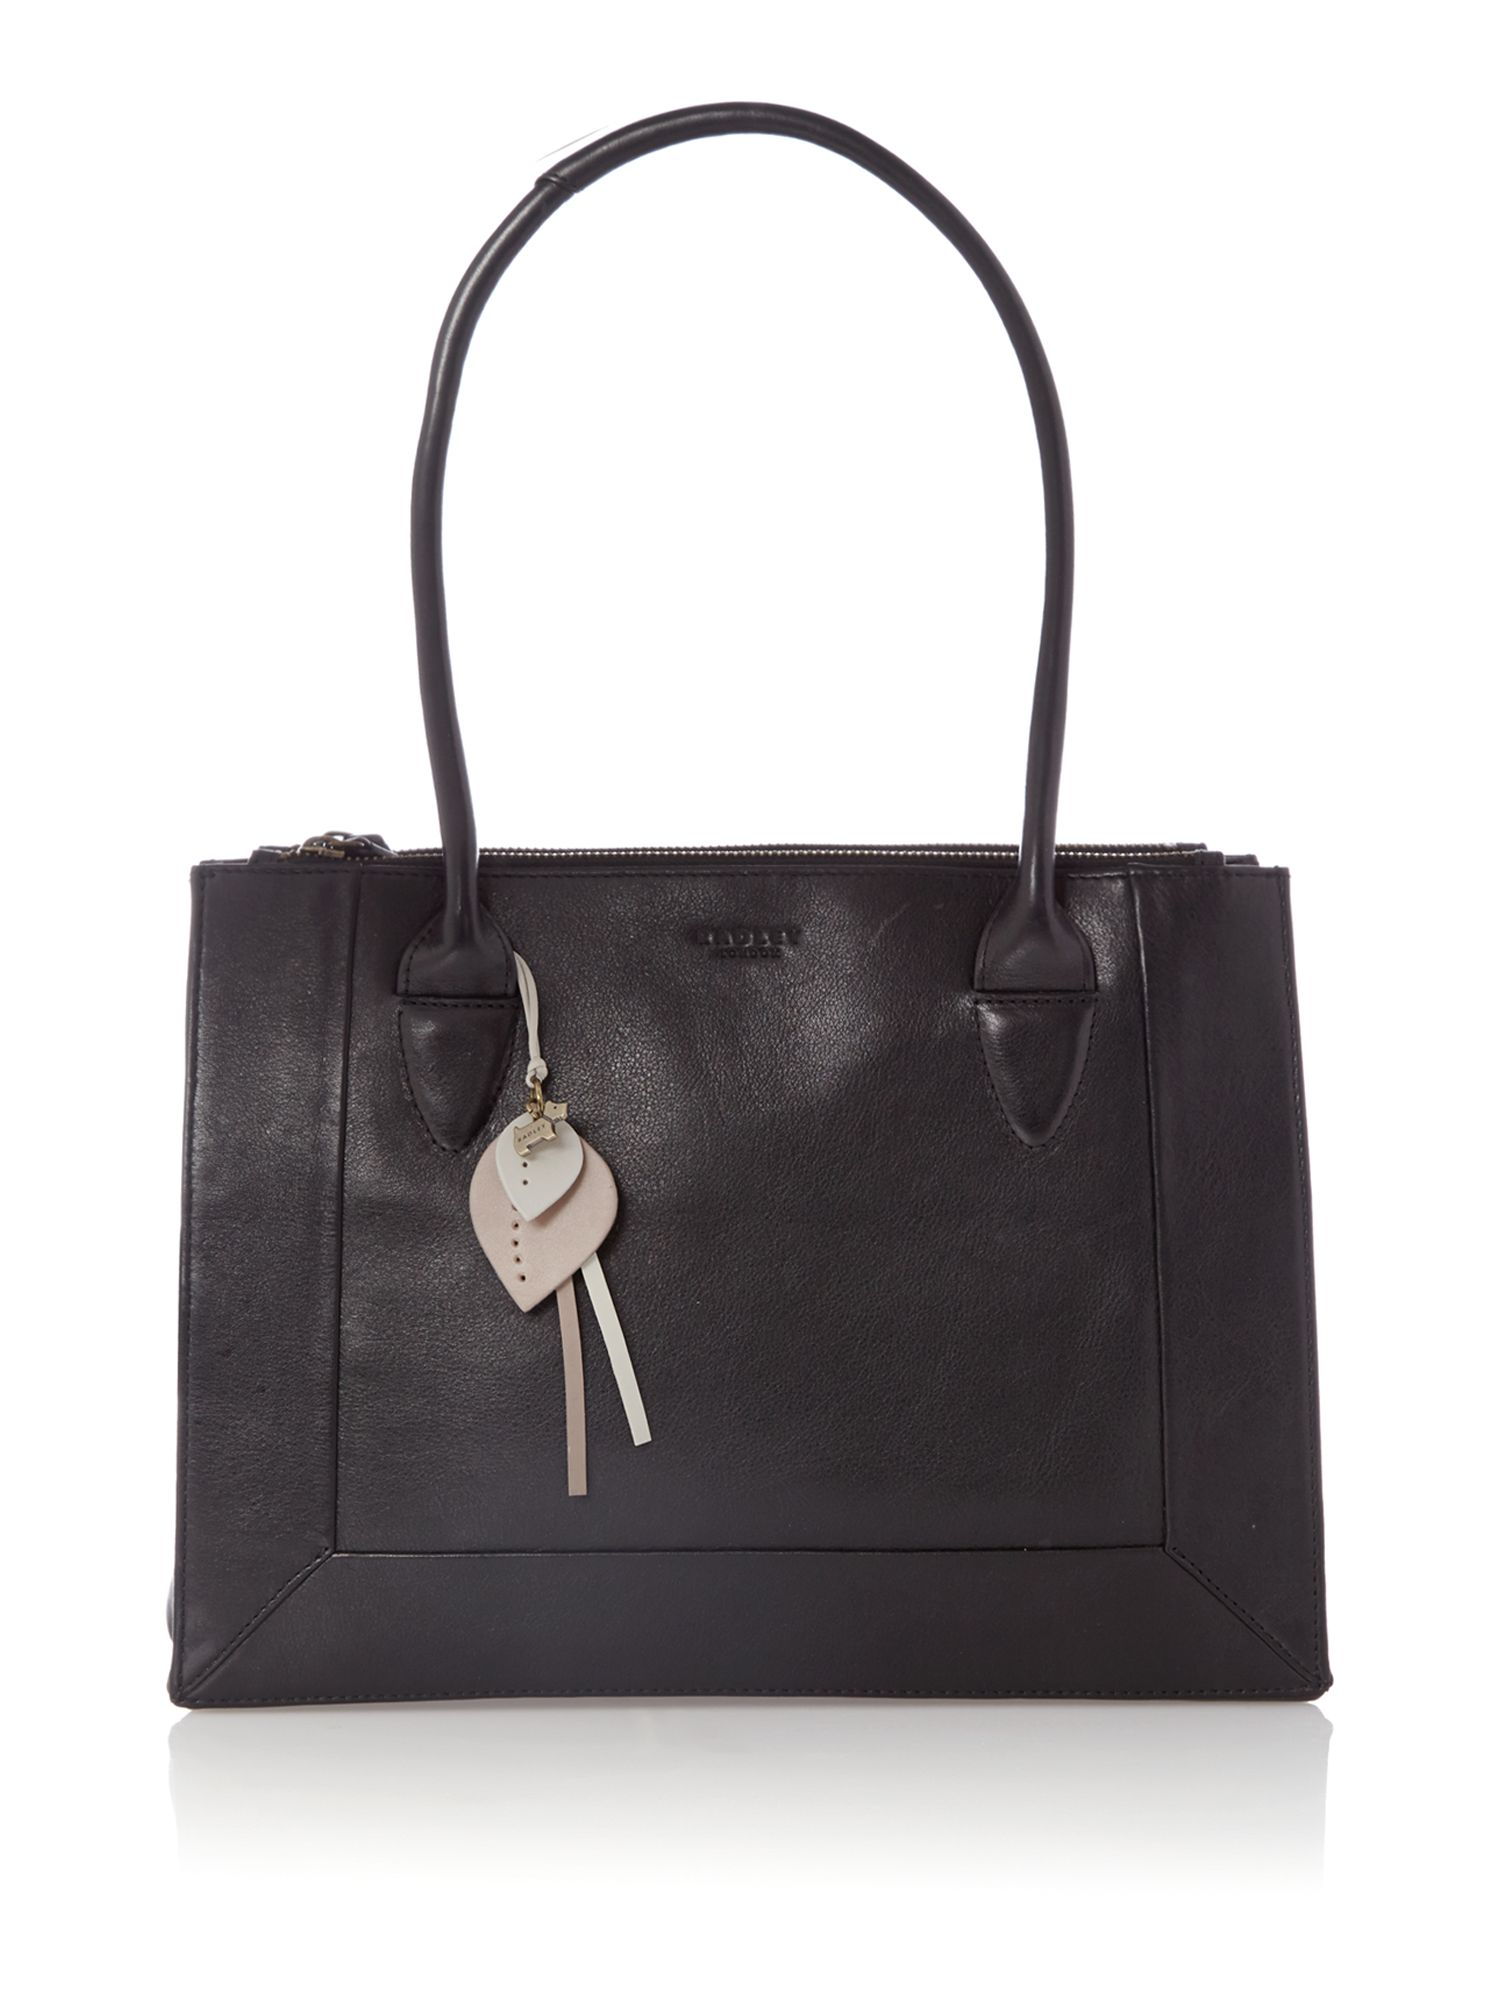 Border black leather medium ziptop tote bag